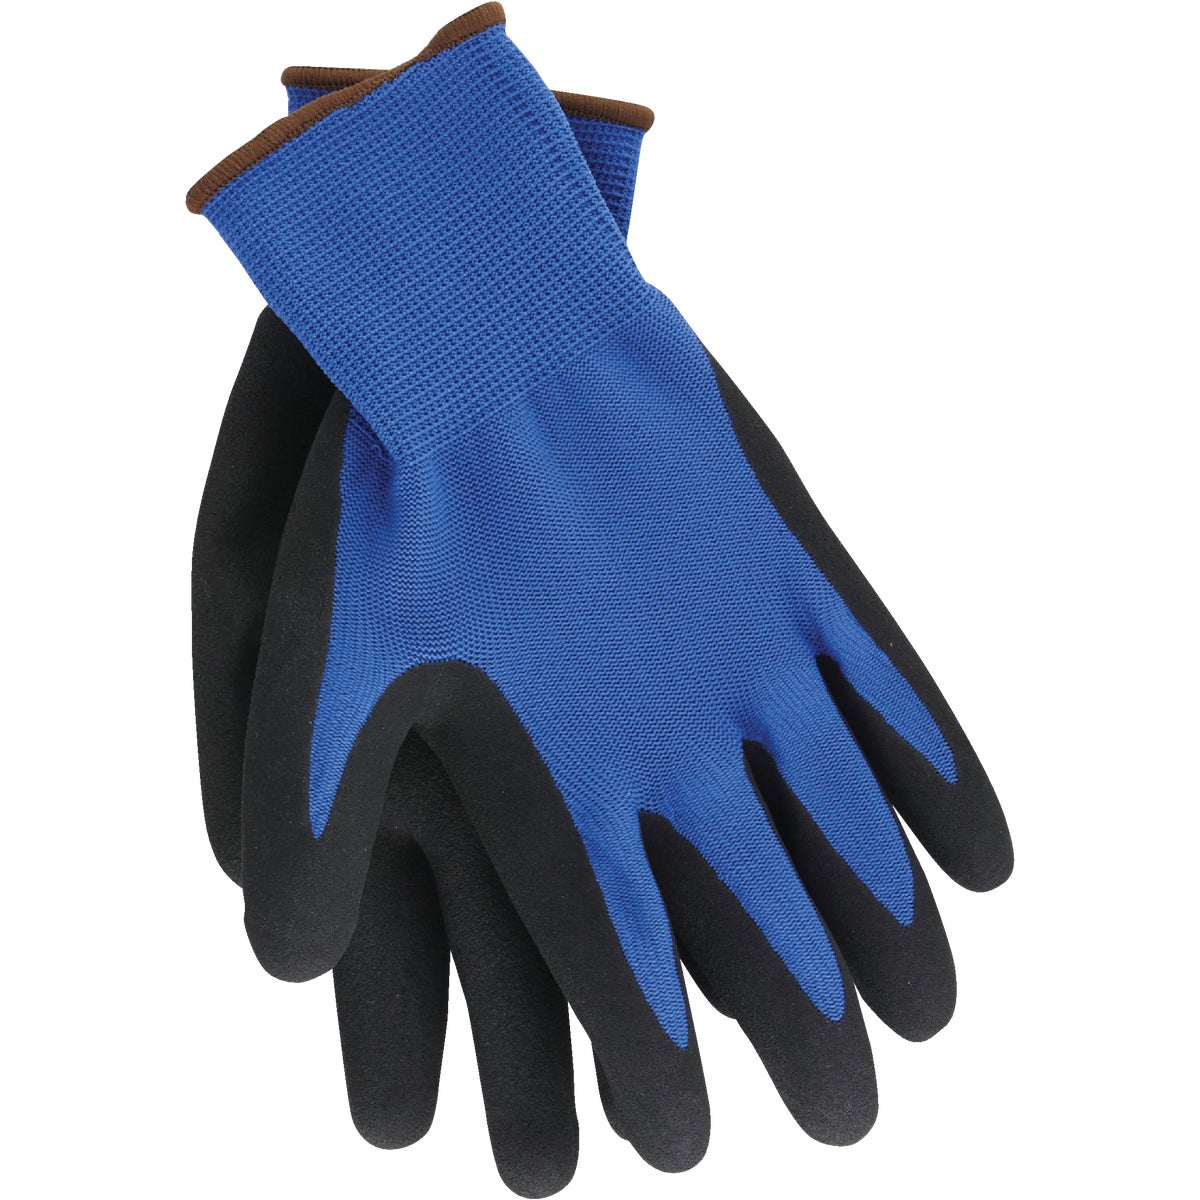 BLUE LARGE GRIP GLOVE - 736694 by Do it Best